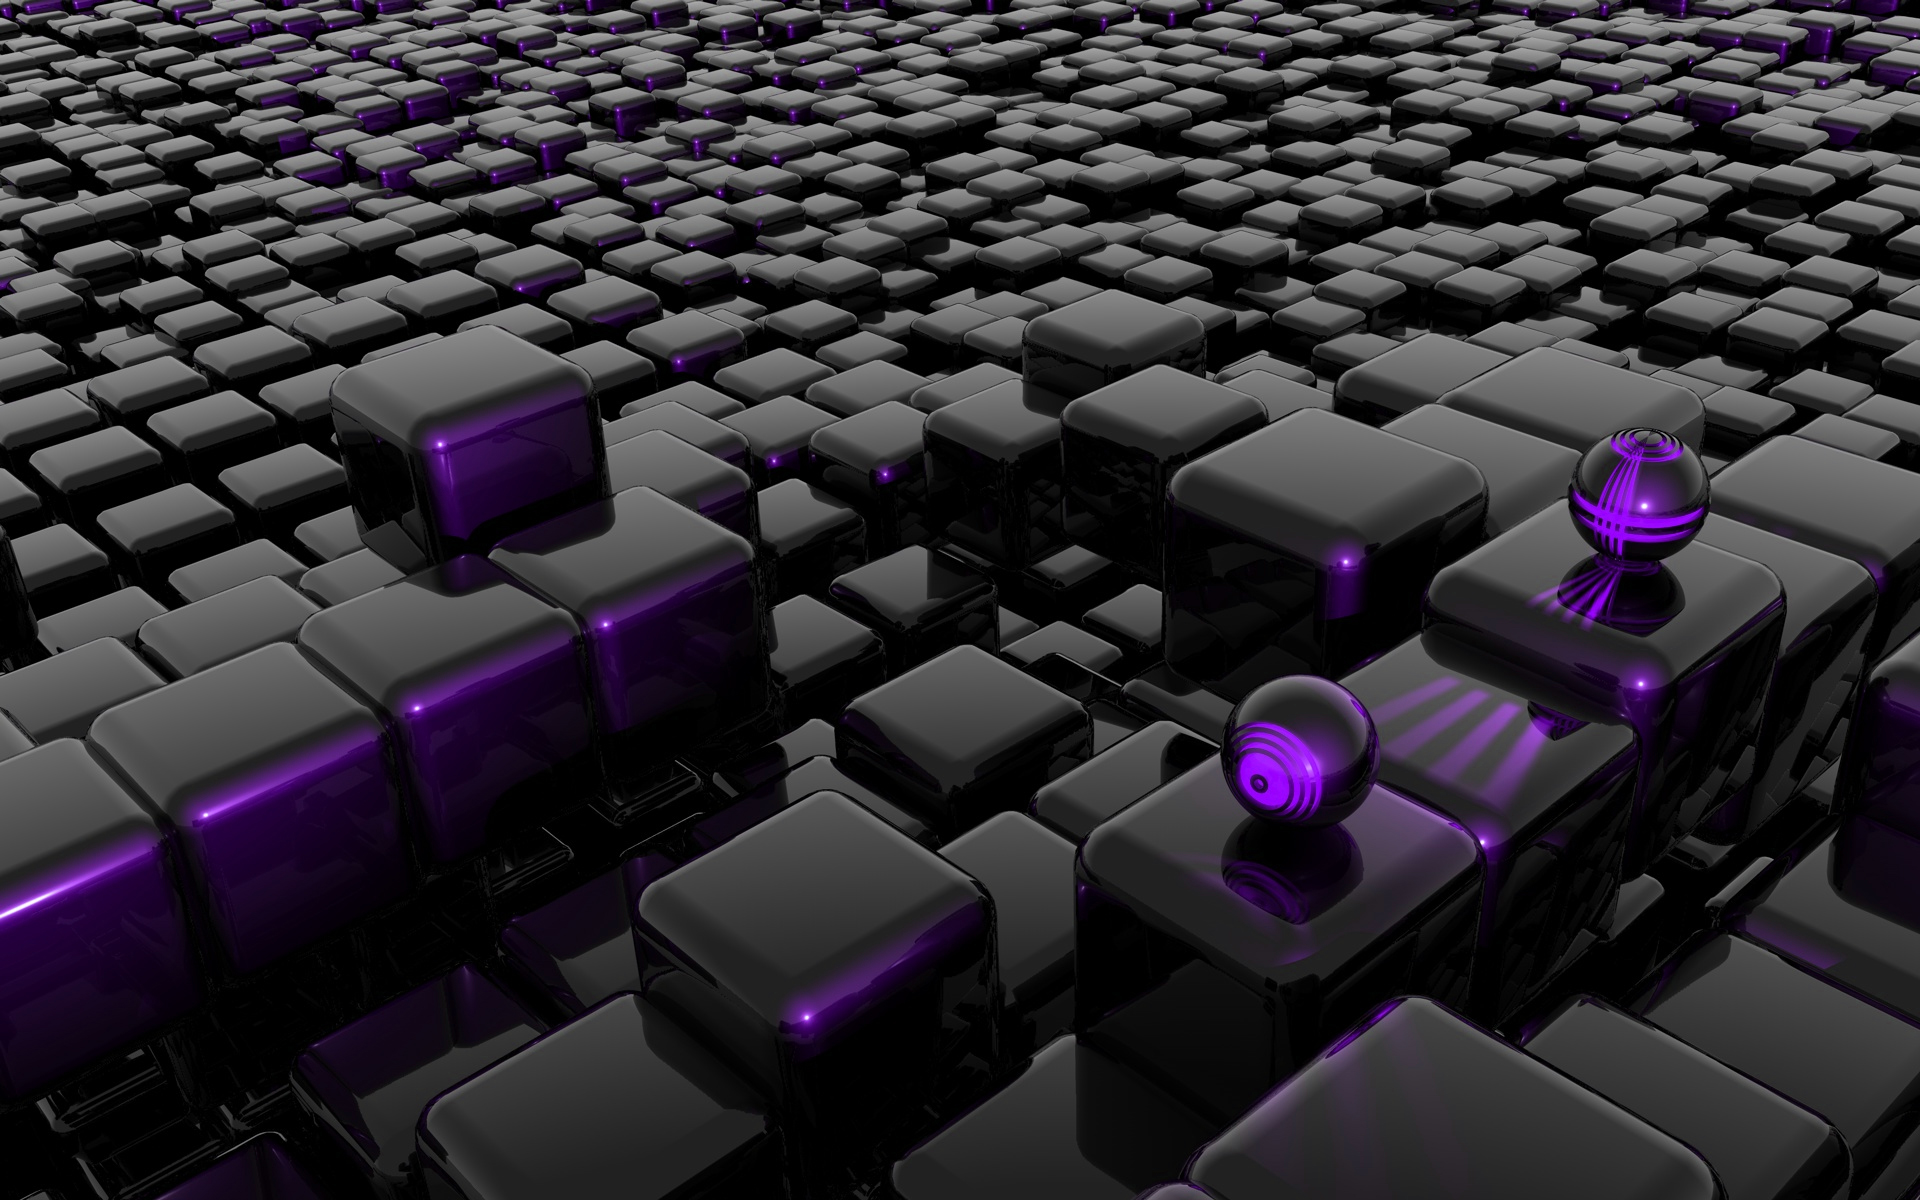 CGI - Cube  - Emachines  - Cubes - Violett - Music Wallpaper